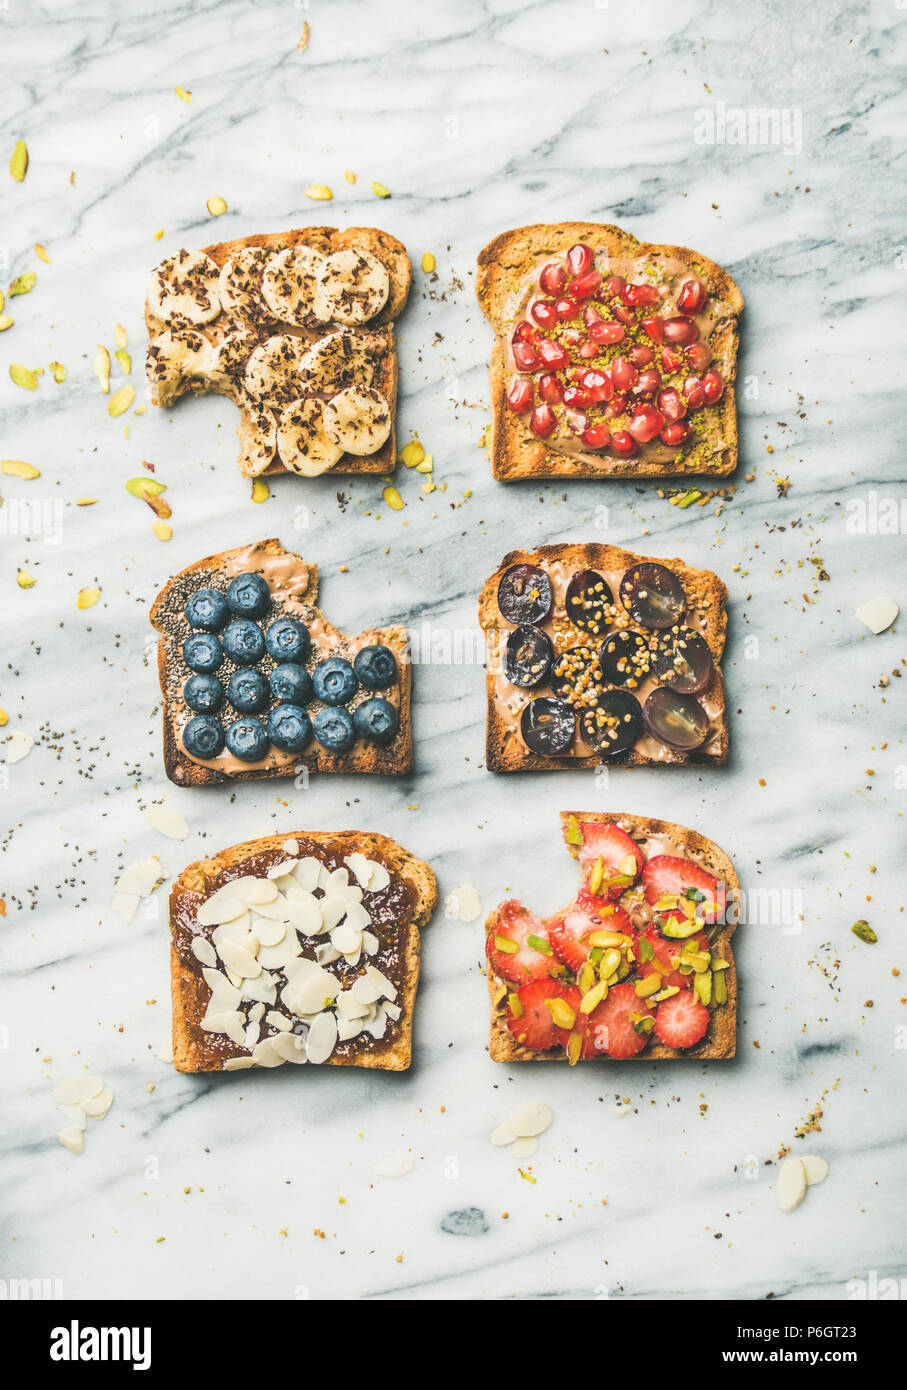 Healthy breakfast or snack with wholegrain toasts, top view Stock Photo